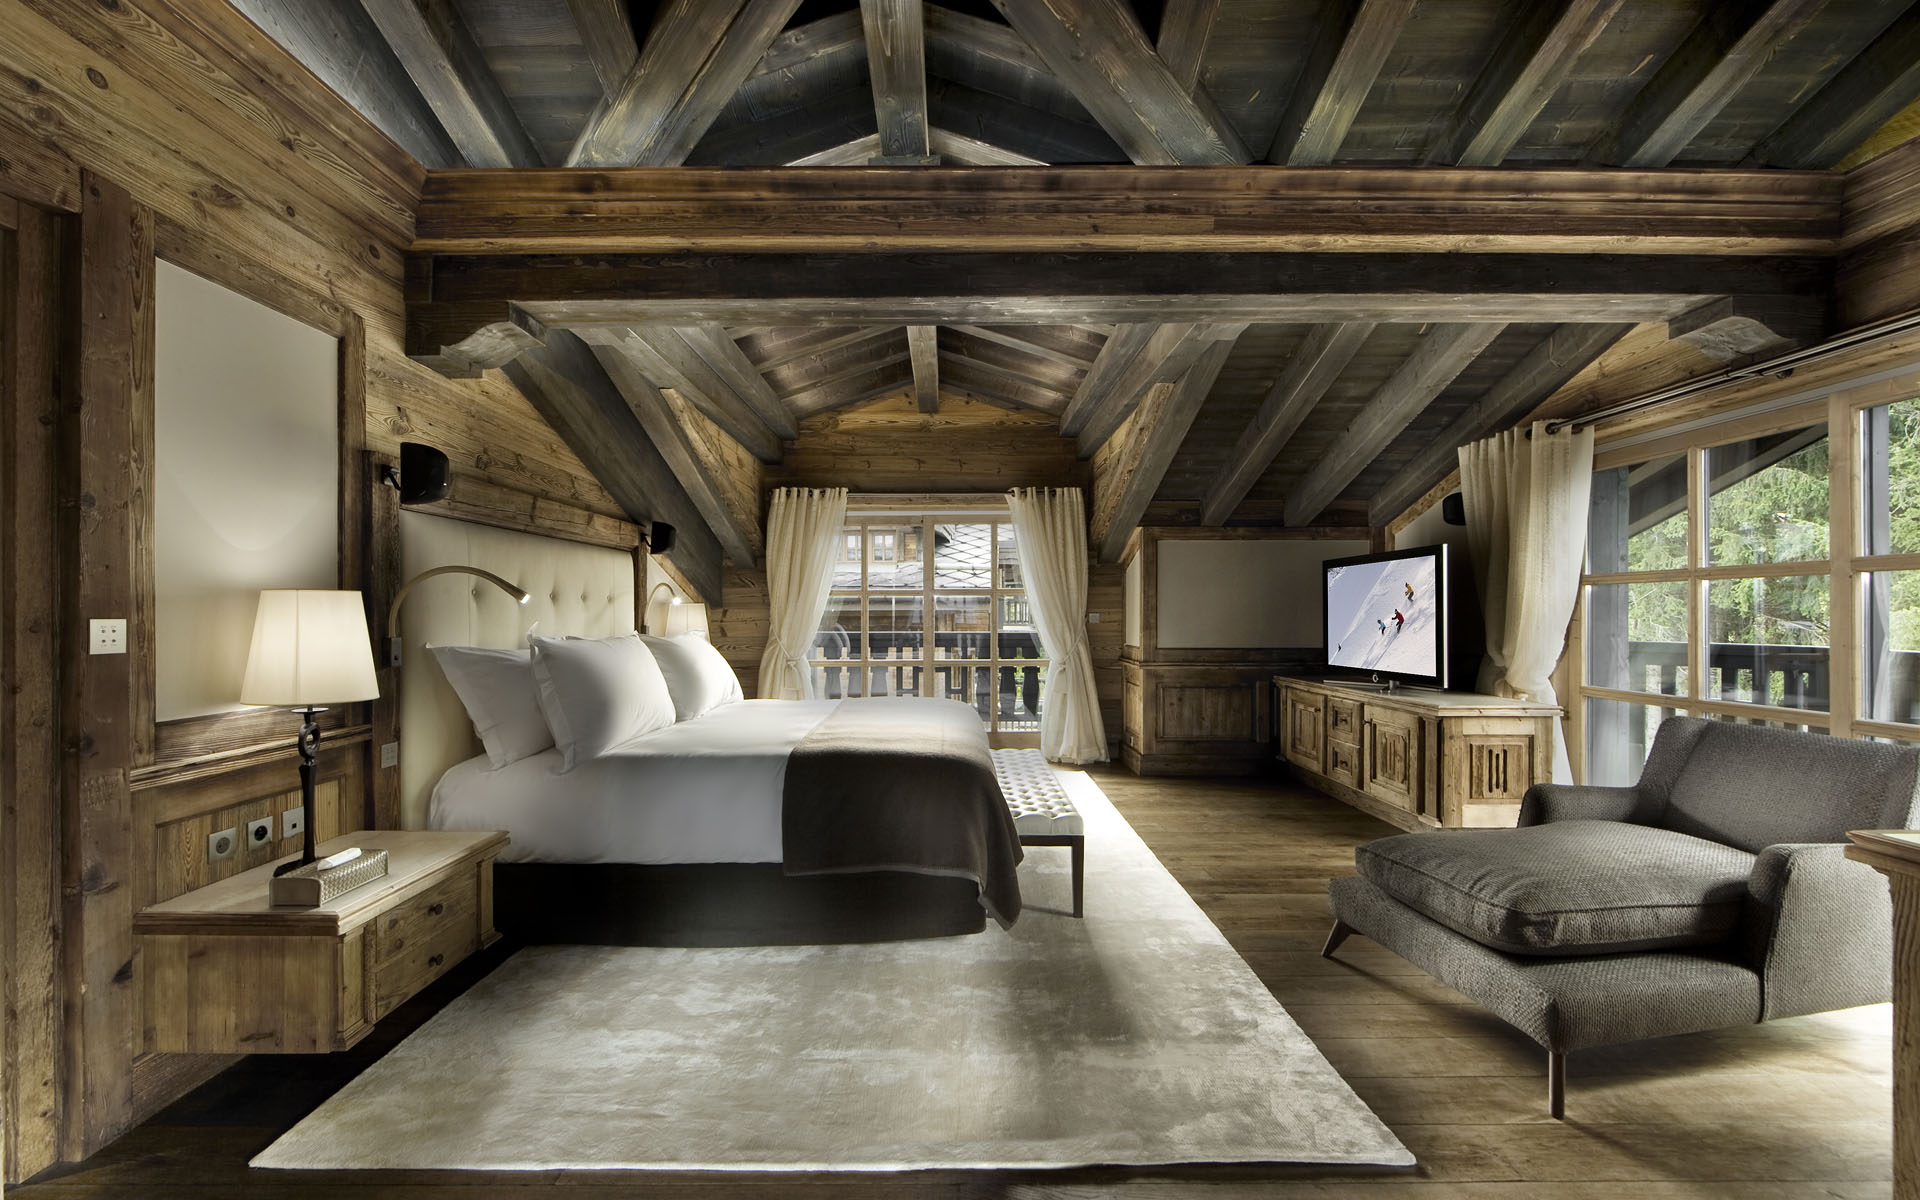 One-of-a-kind luxury ski chalet in Courchevel 1850, France | Blog ...